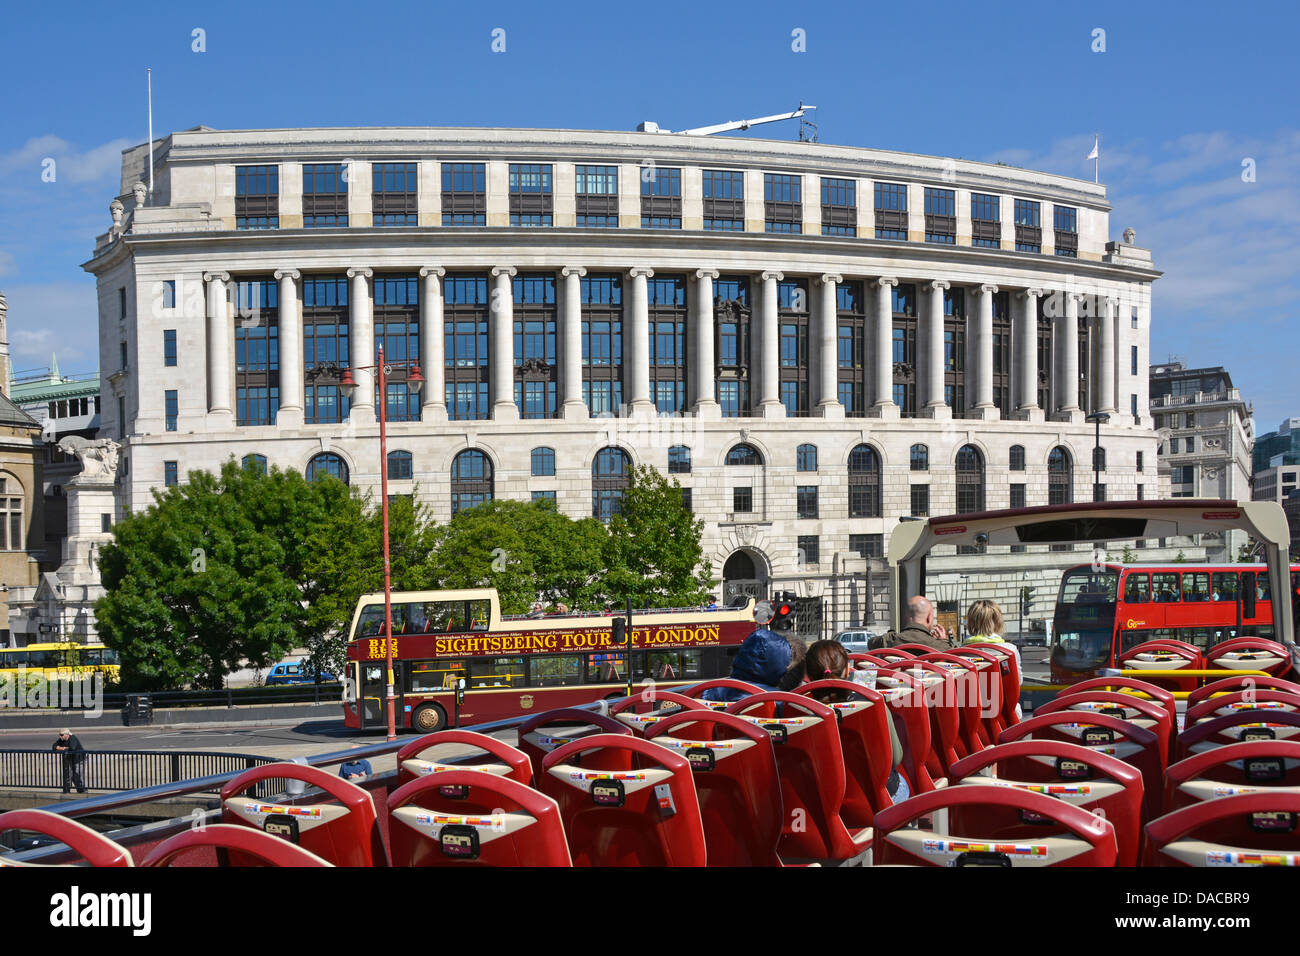 London open top sightseeing tour buses at Unilever House Blackfriars City of London England UK Stock Photo